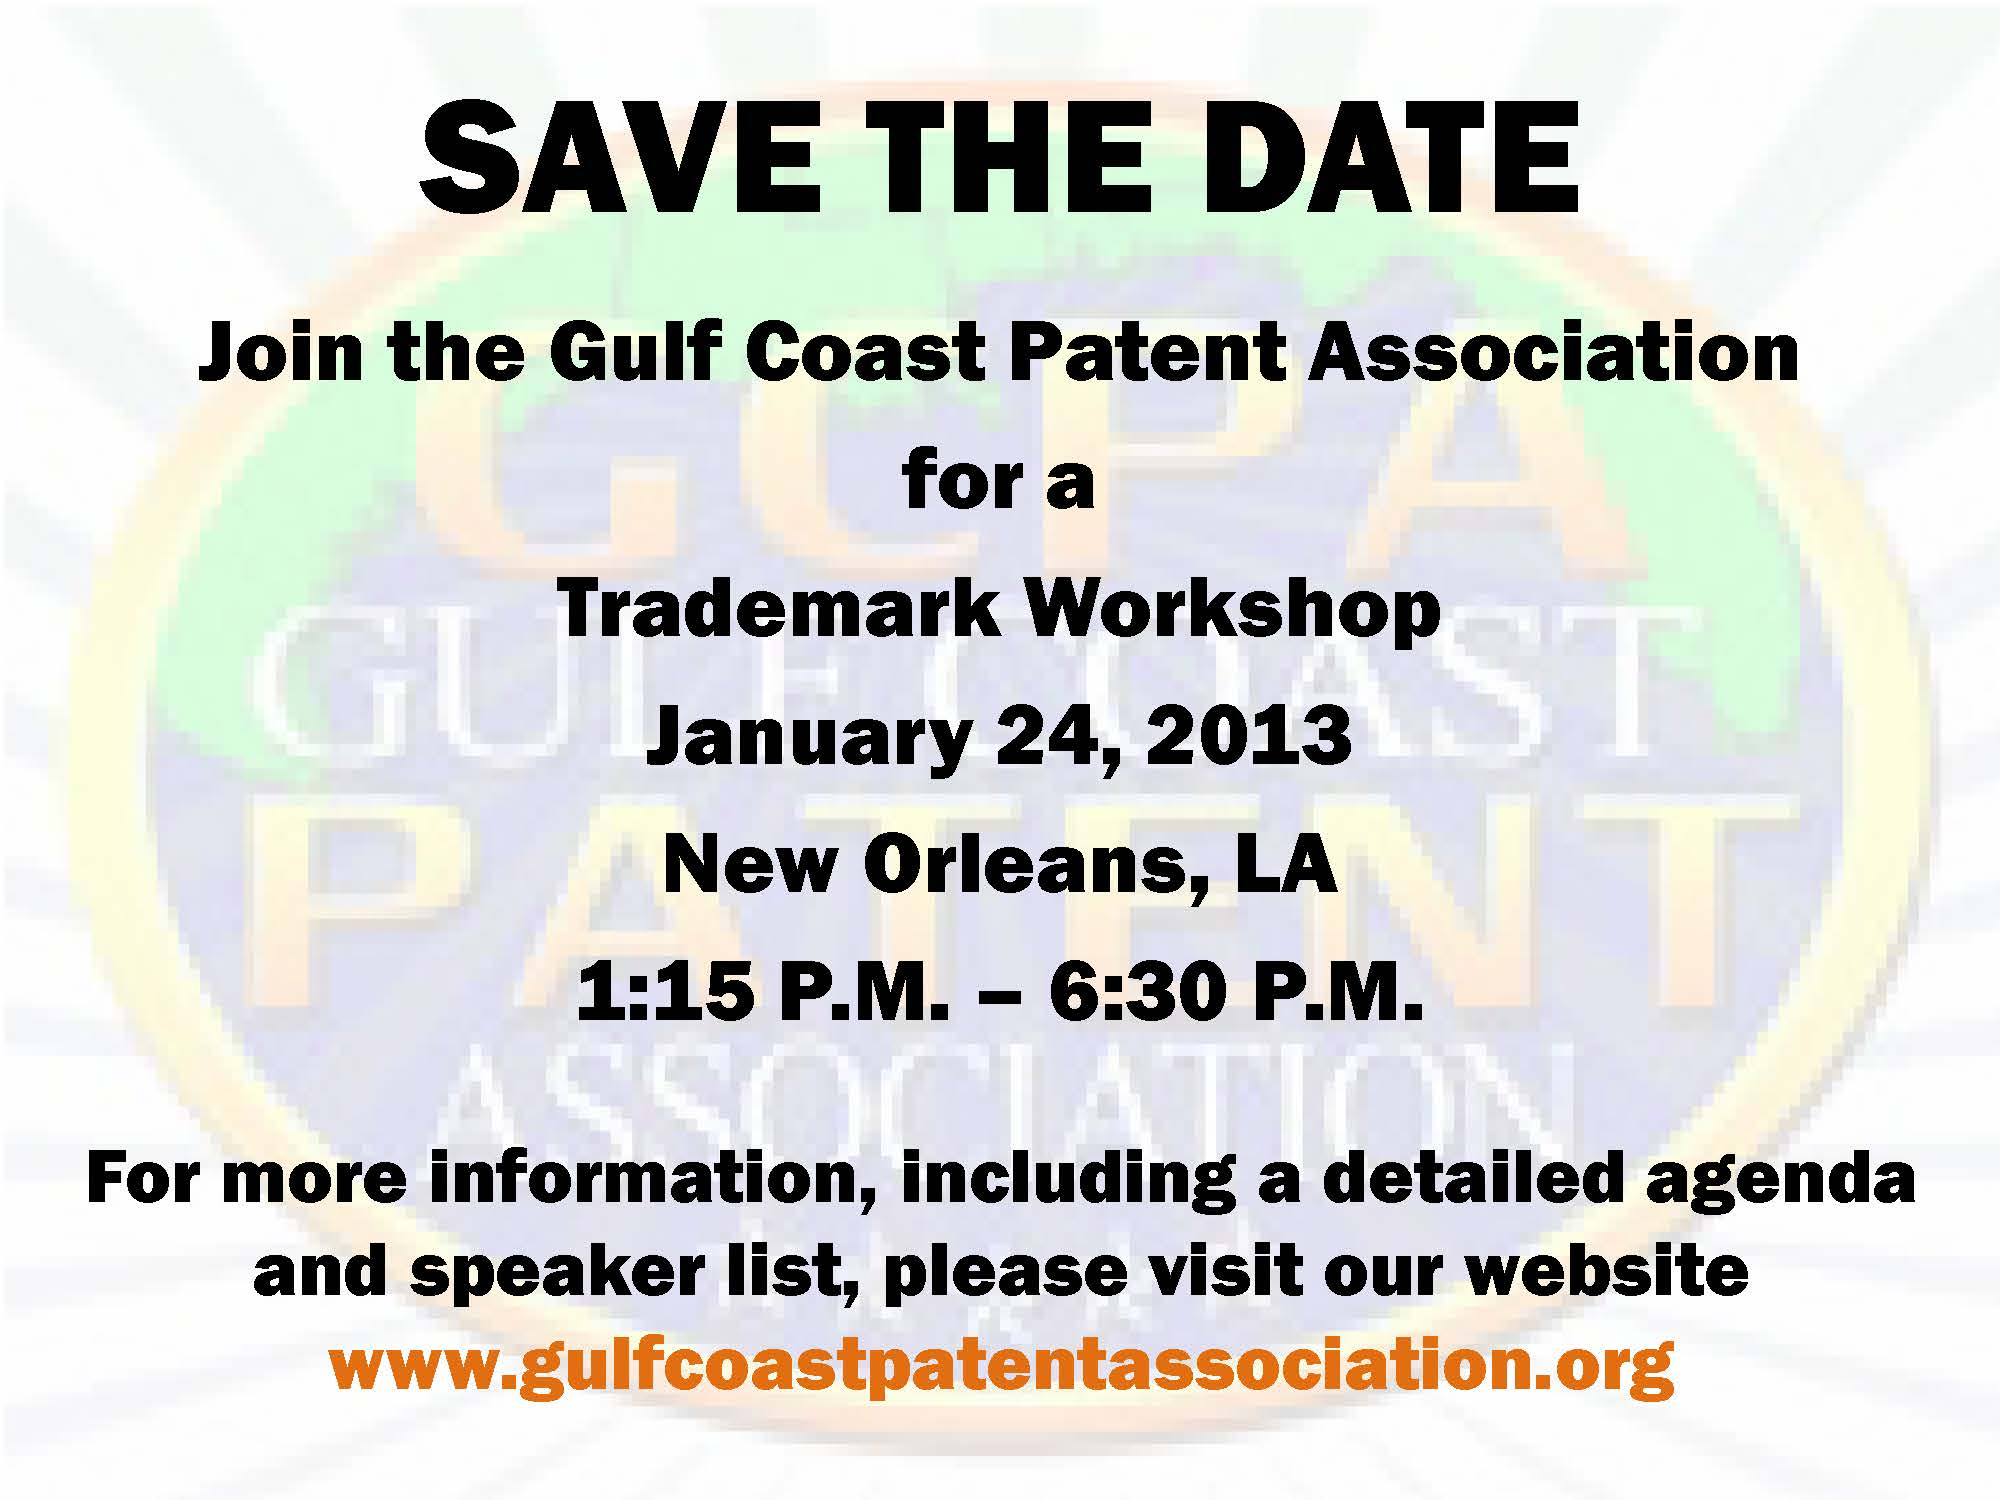 Save the date - Trademark Workshop